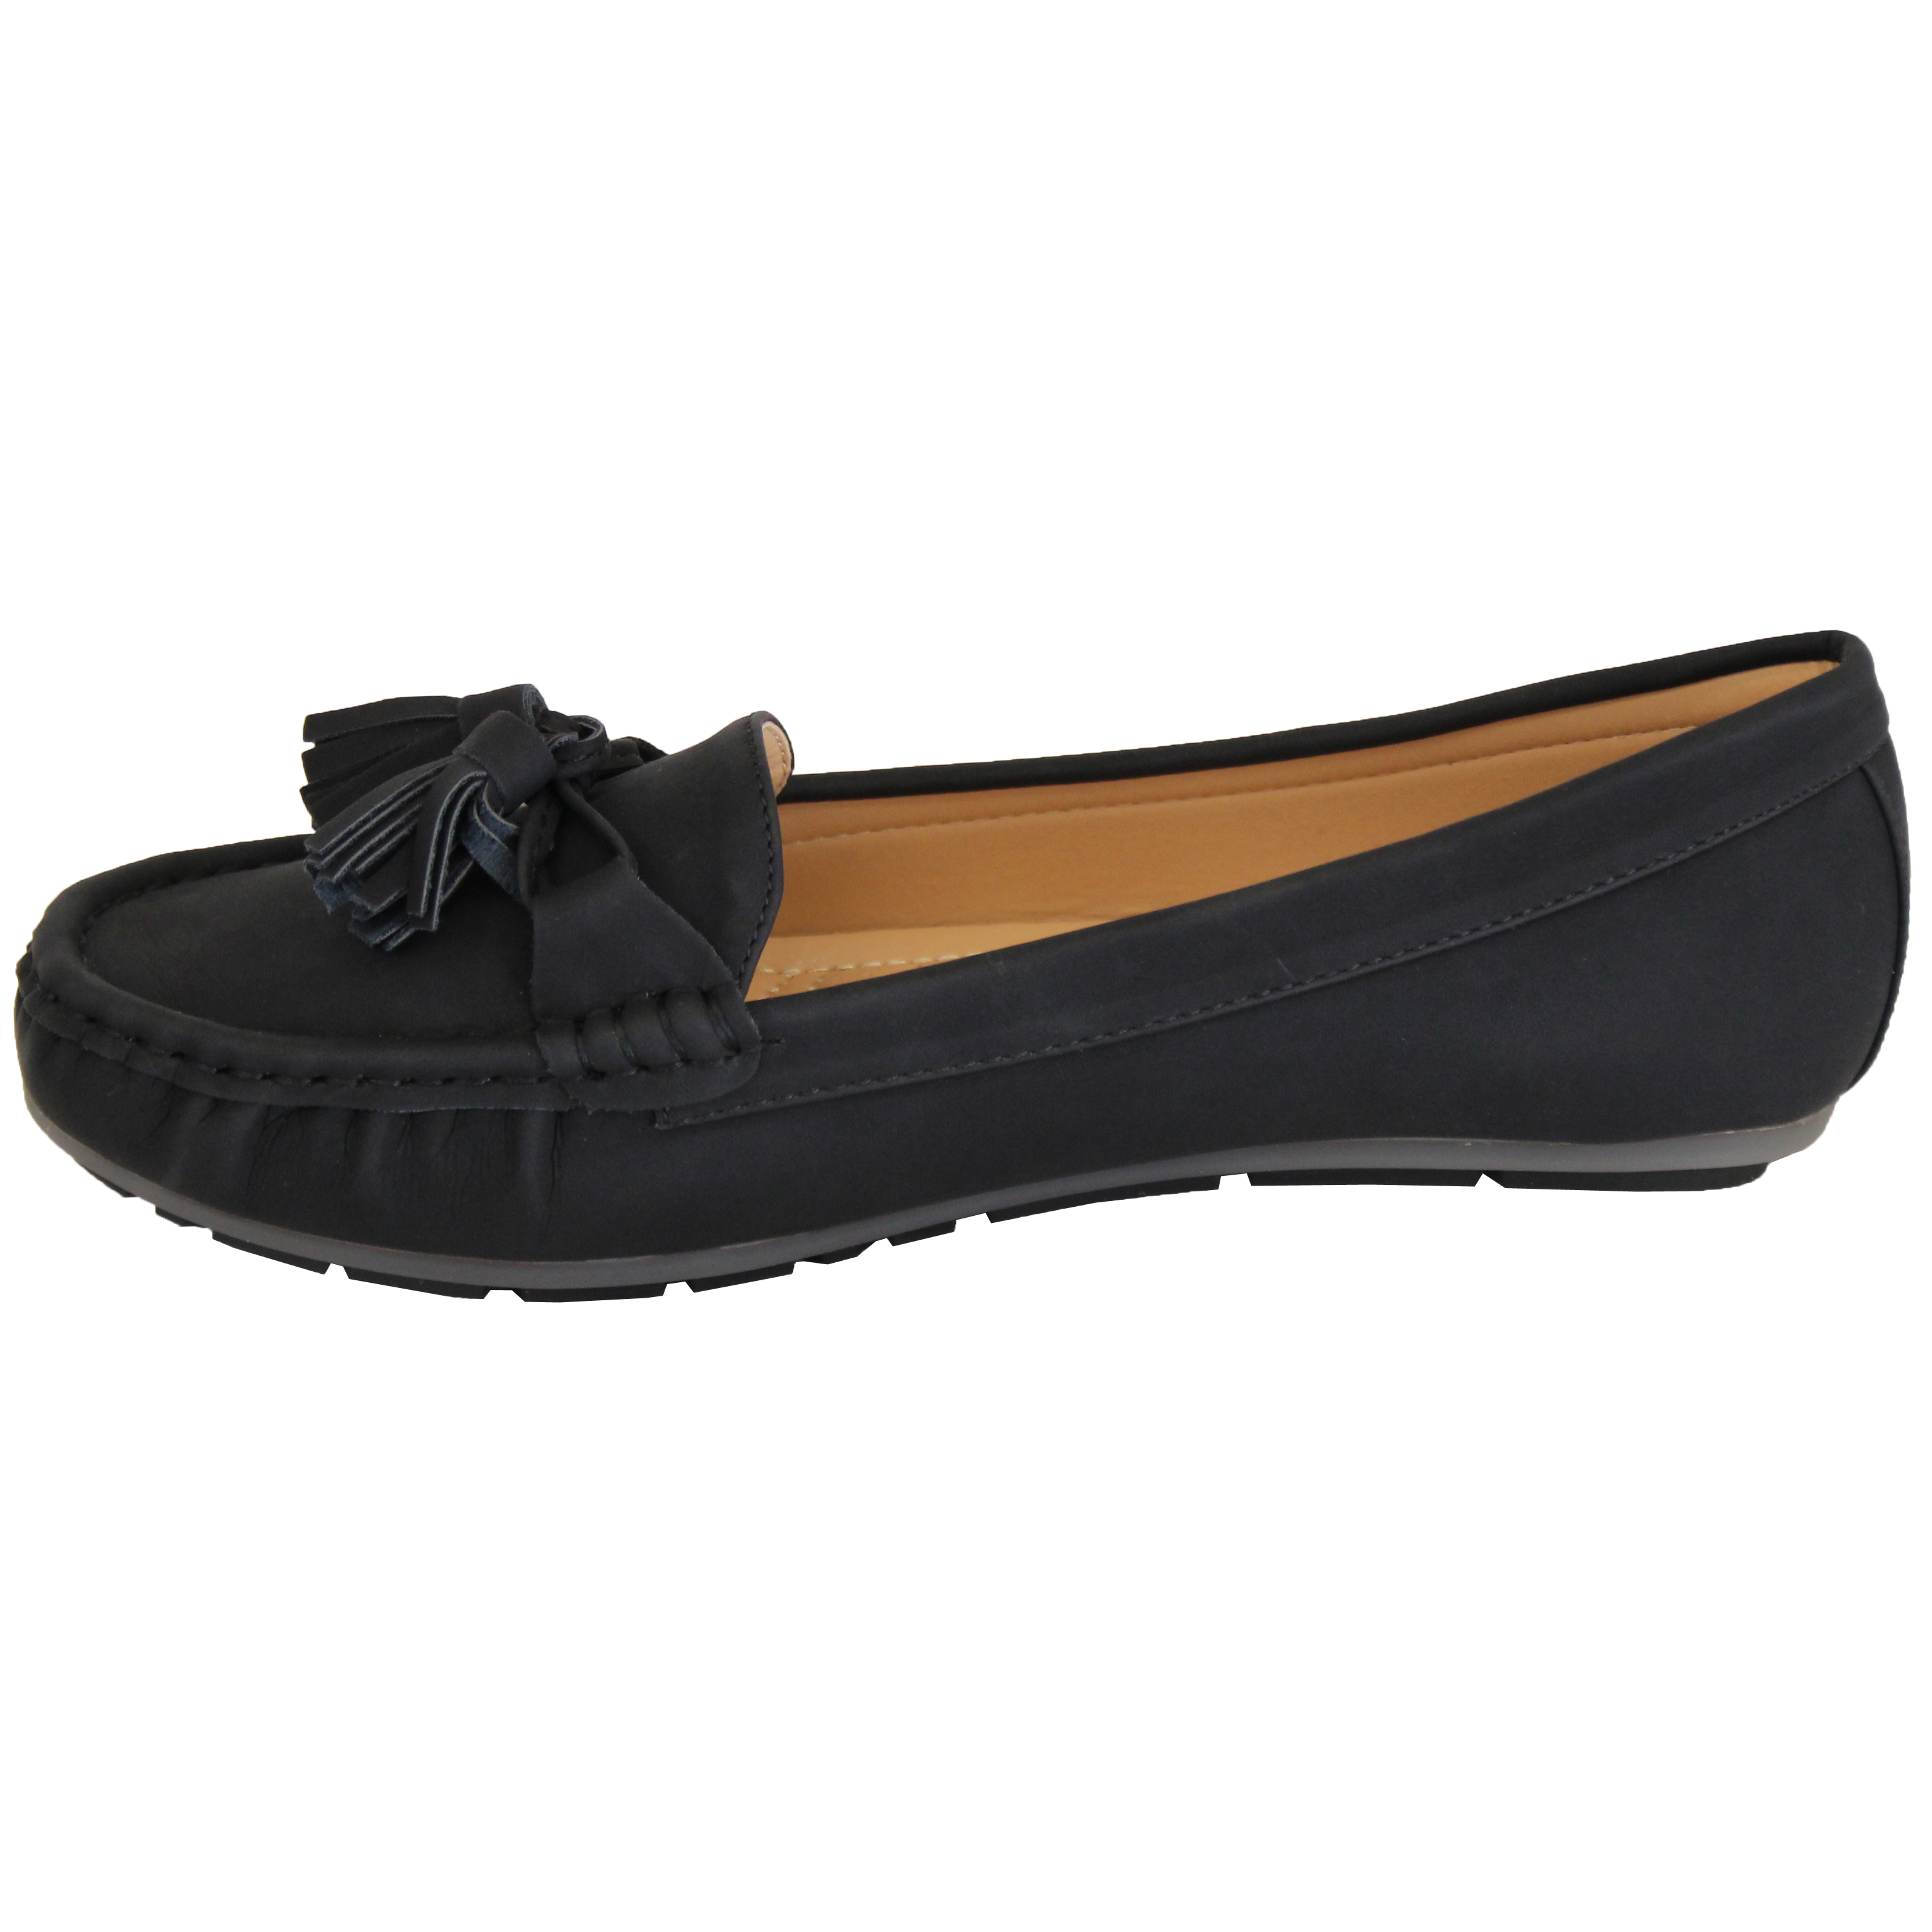 Ladies-Slip-On-Ballerina-Womens-Suede-Look-Pumps-Flat-Bow-Tassels-Shoes-Fashion thumbnail 3